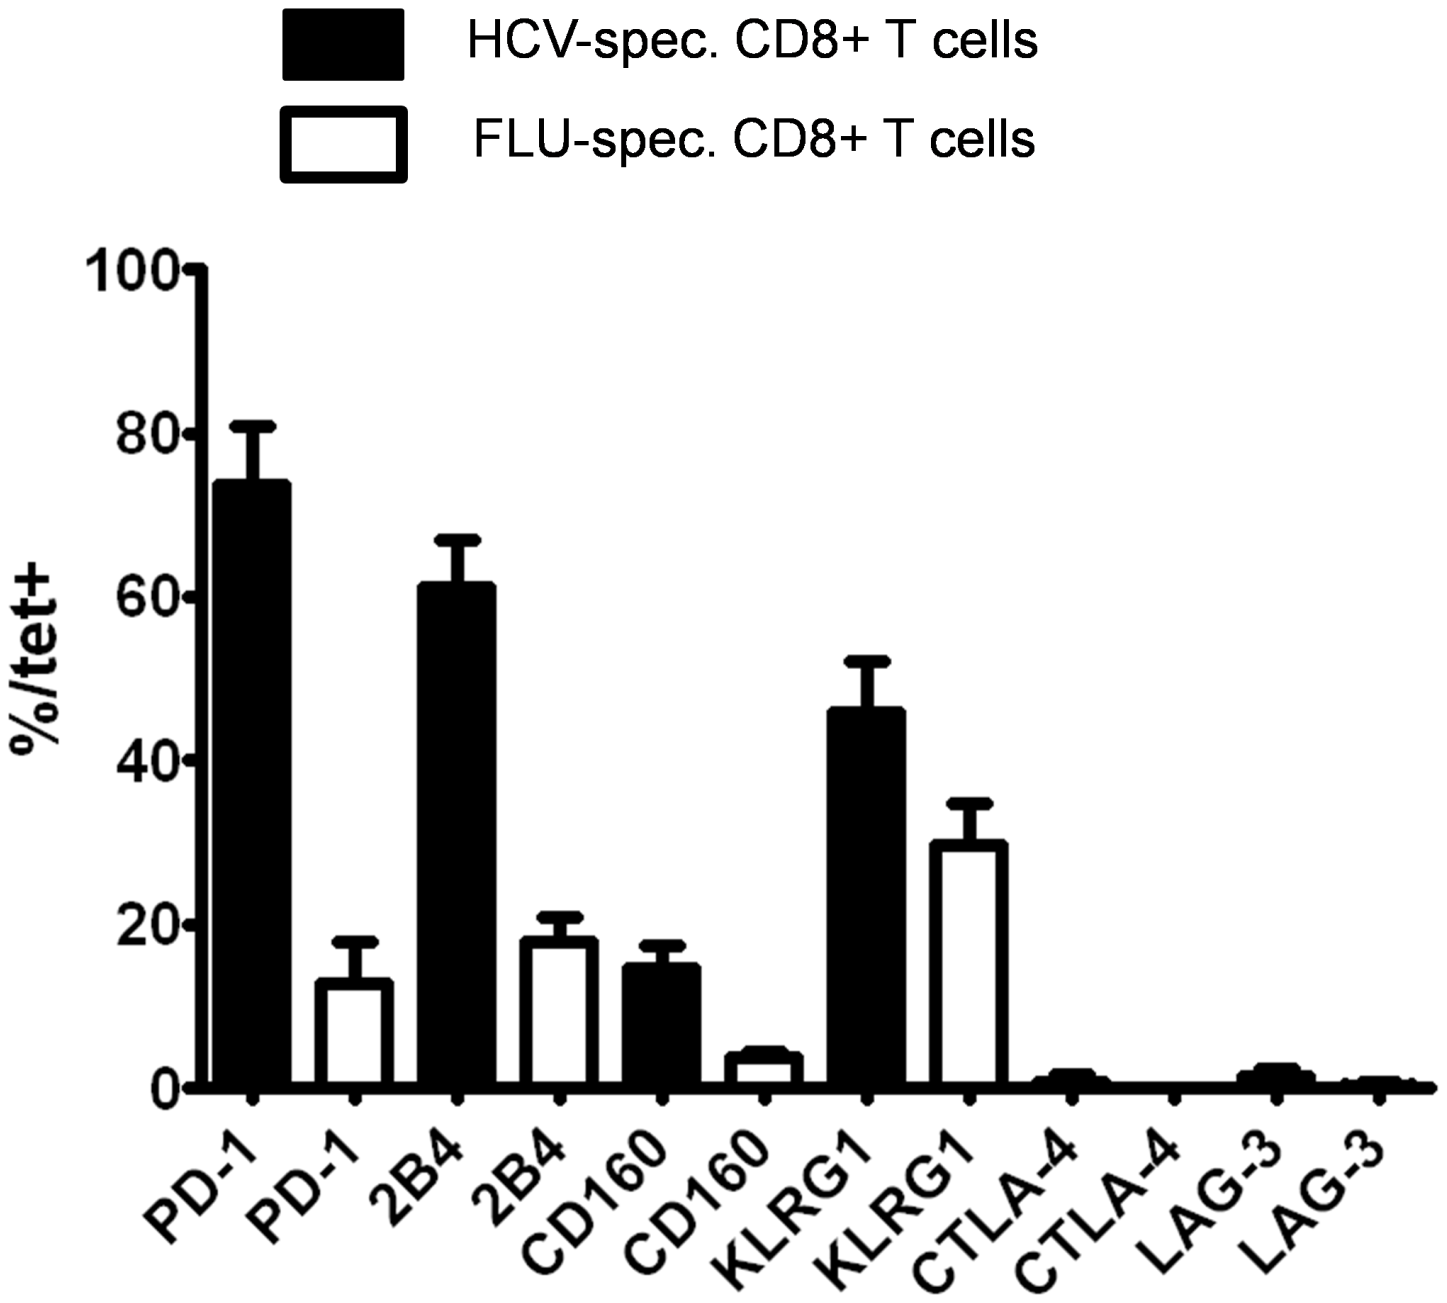 Expression of various inhibitory receptors by HCV-specific CD8+ T cells.